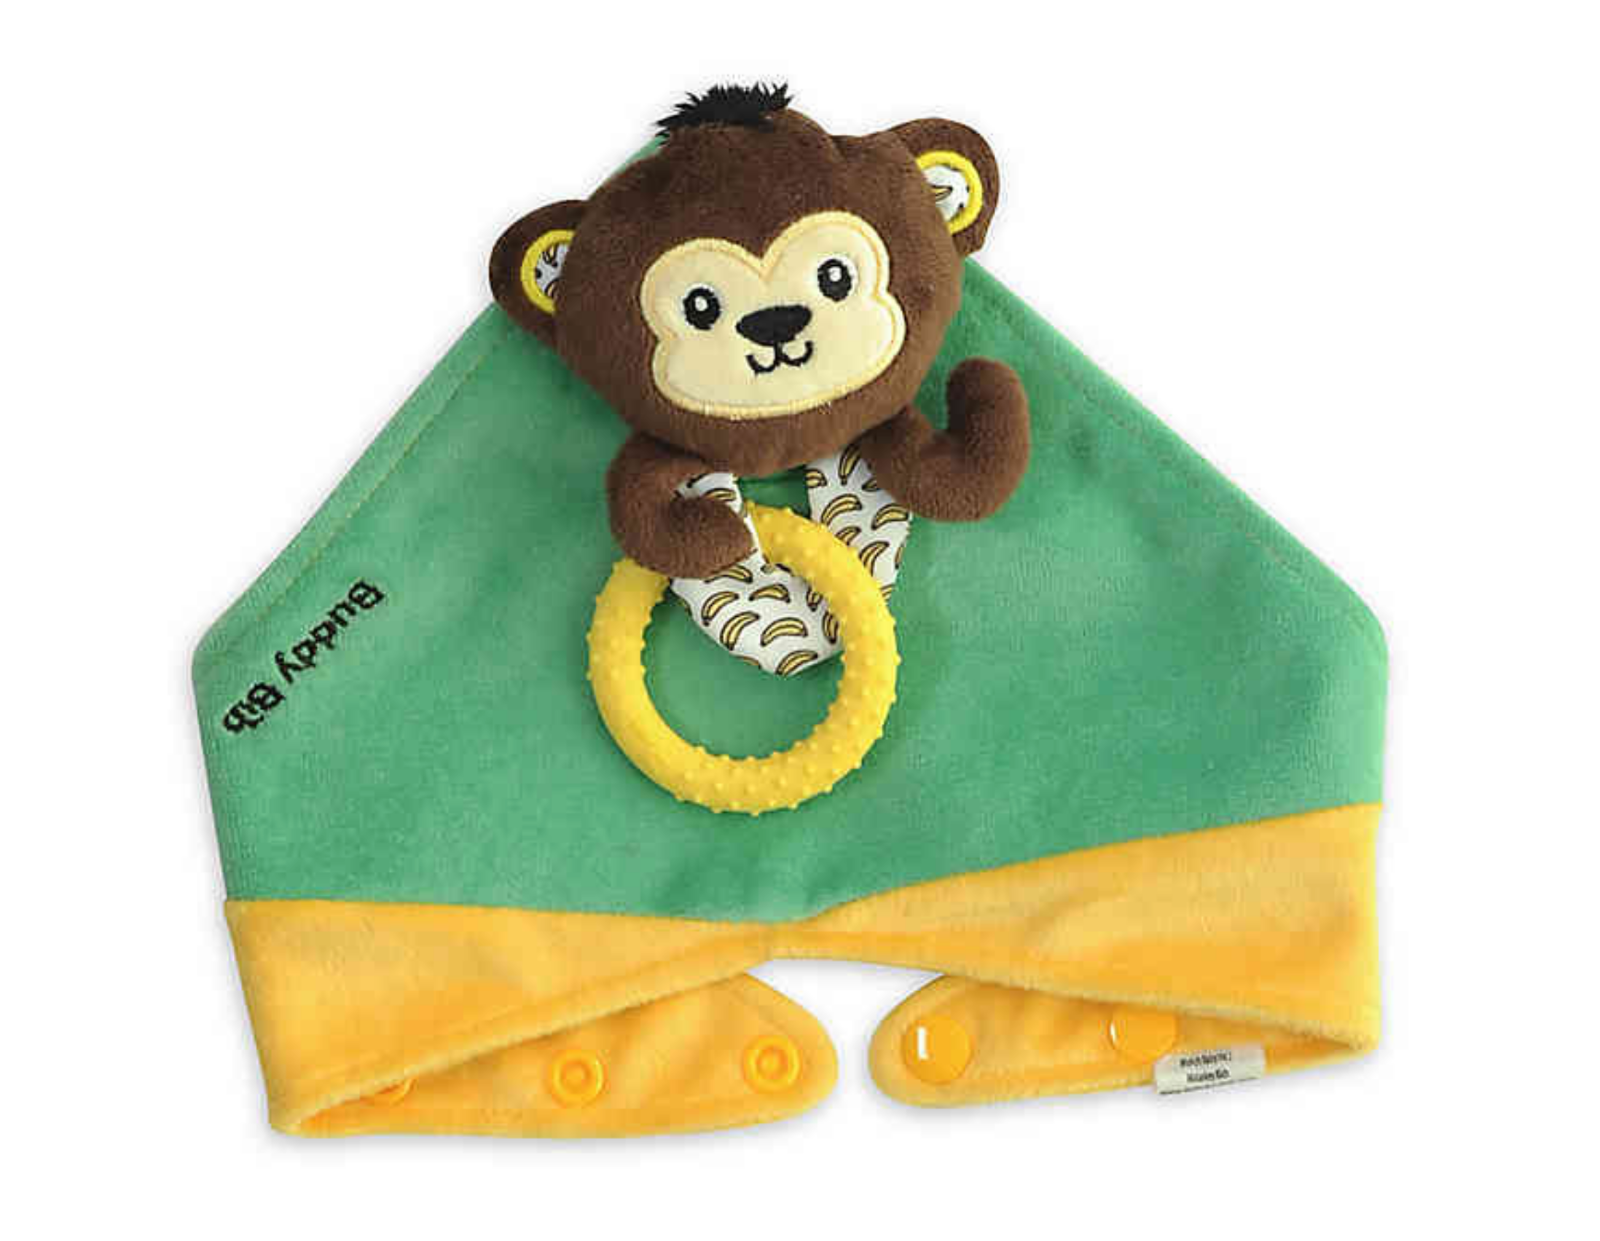 Malarkey Kids Original Mom Invented Teething Toy 3in 1 Buddy Bib MISCHIEF MONKEY